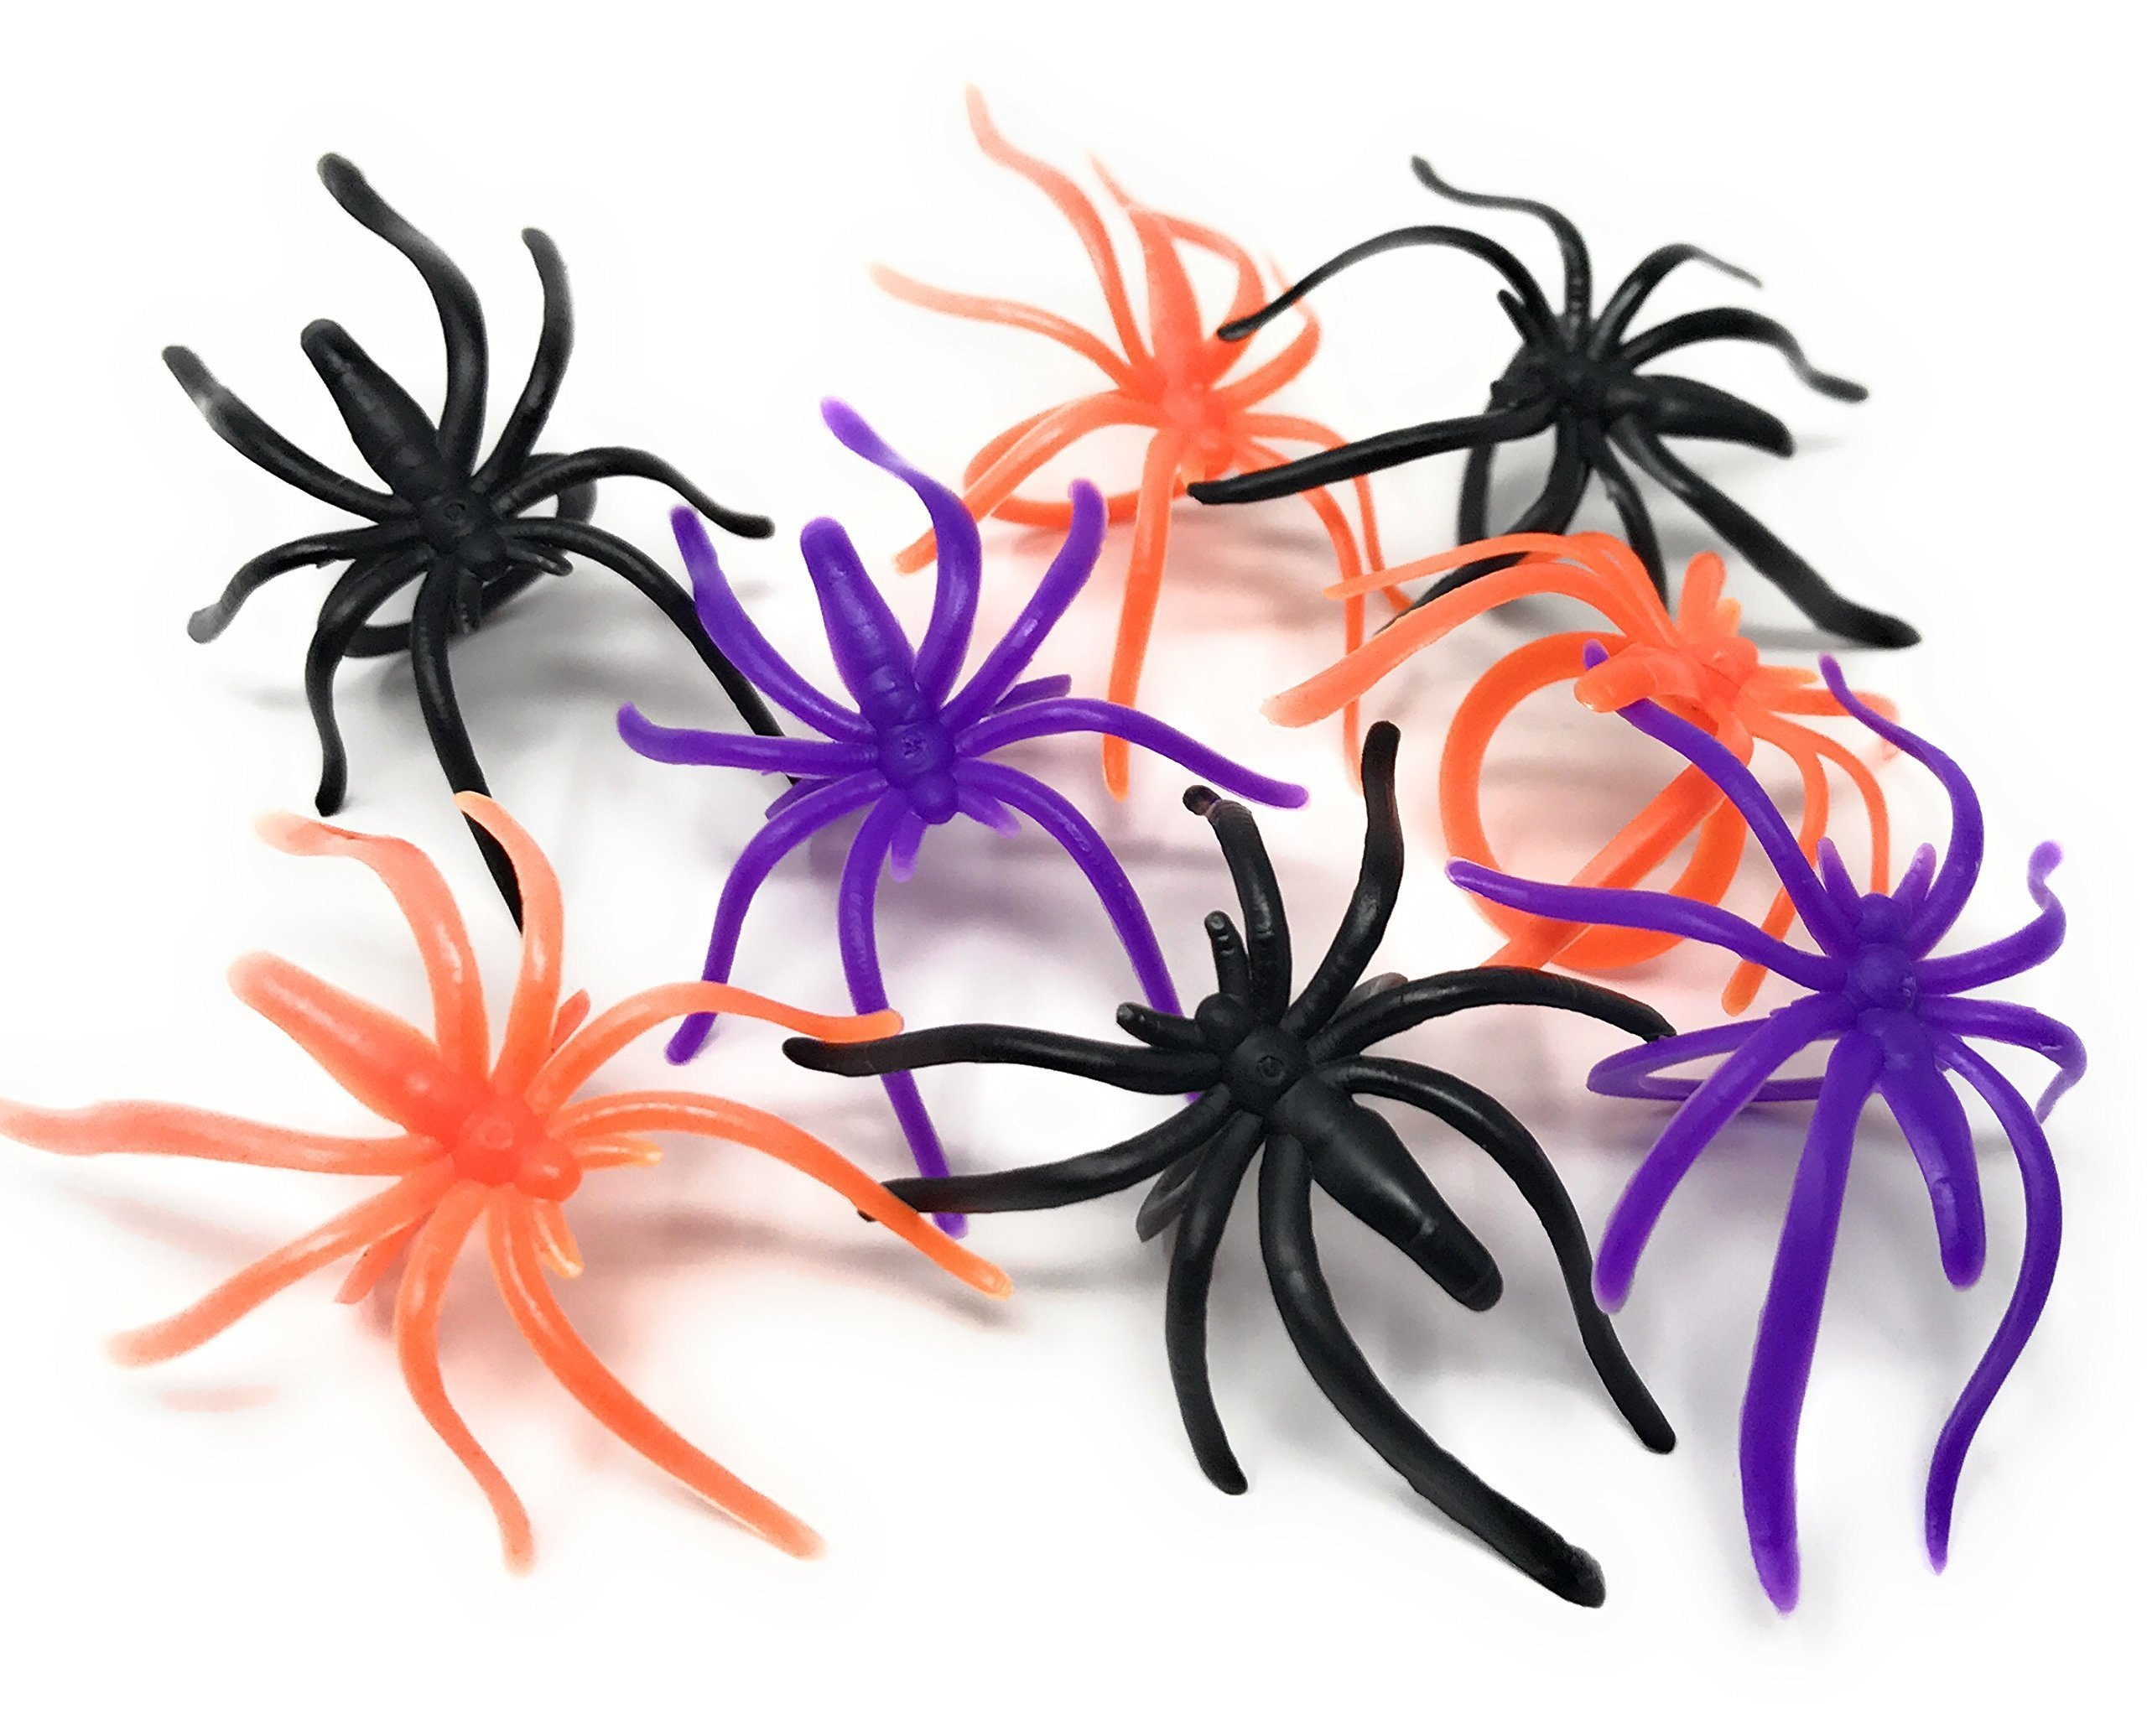 288 Bulk Halloween Spider Ring Assortment - Orange, Purple, Black, and Glow-in-The-Dark Creepy Crawly Party Favors, Treats, and Cupcake Toppers